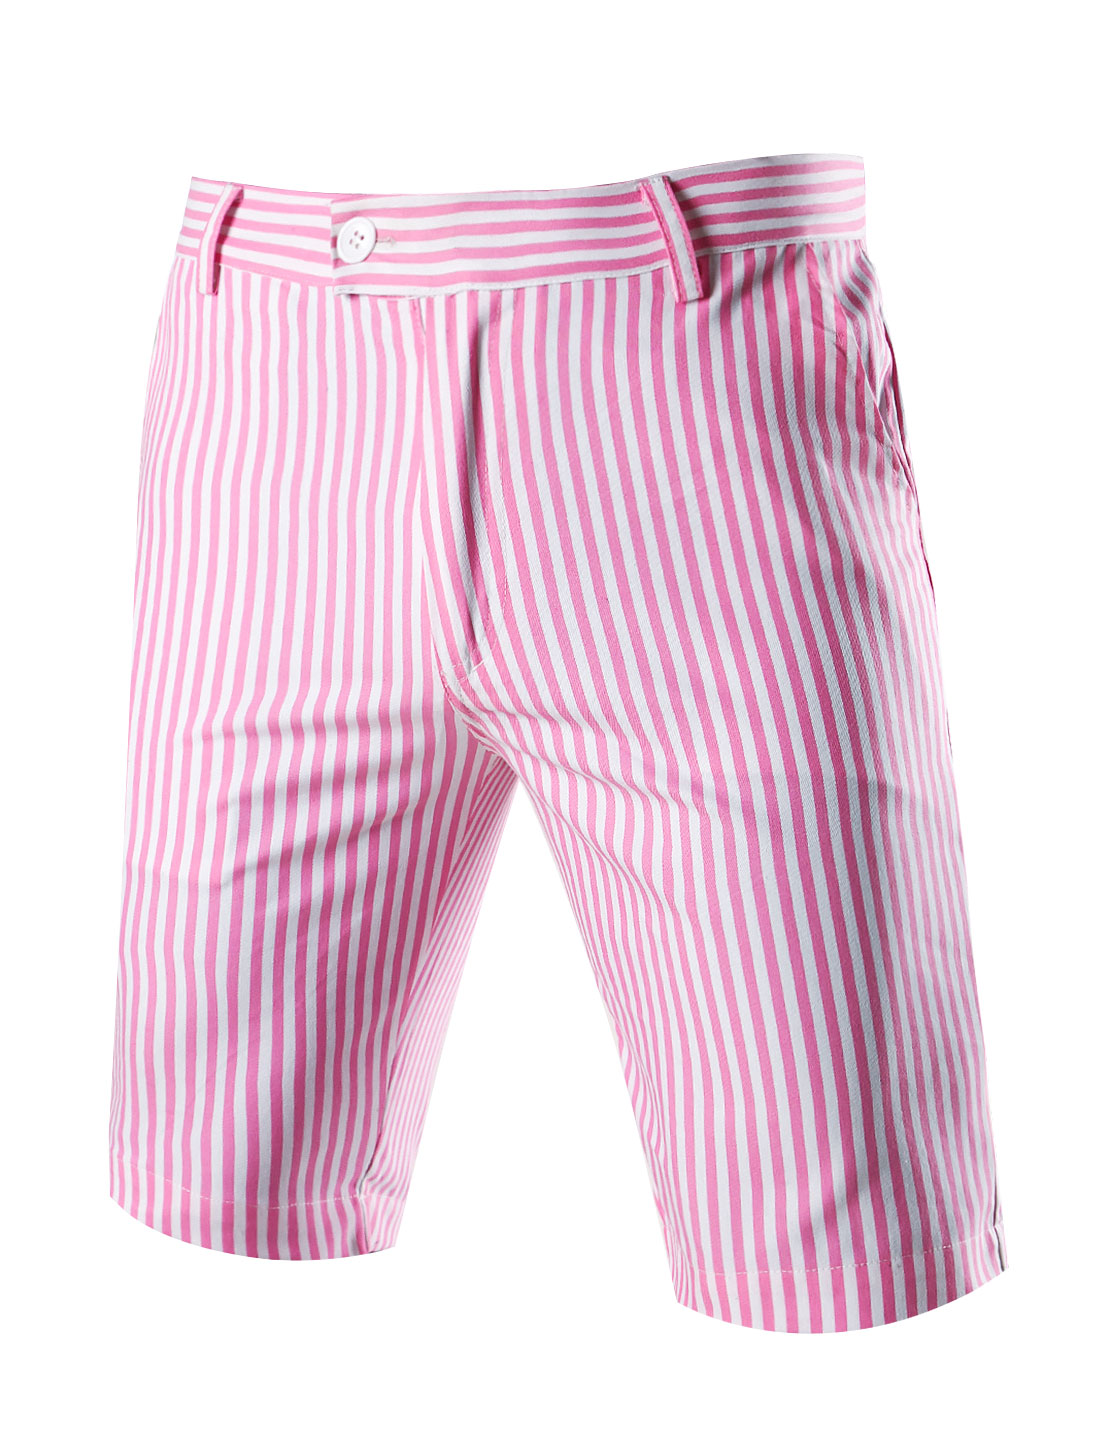 Men Vertical Stripes Four Pockets Casual Chino Shorts Pink W34